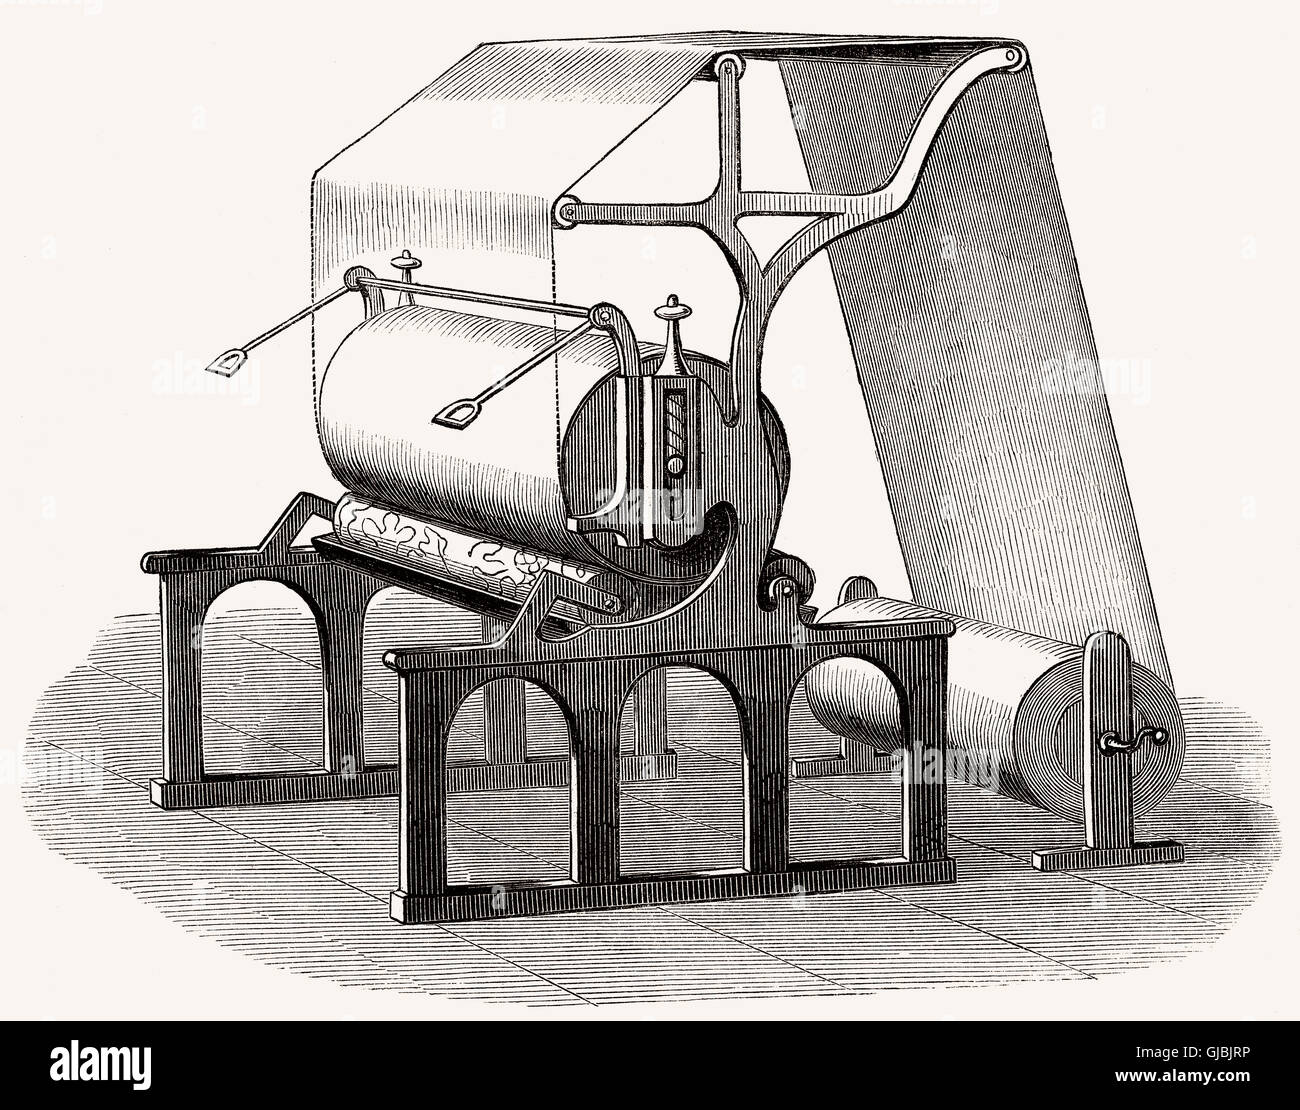 Roller printing machine, textile printing, 19th century - Stock Image